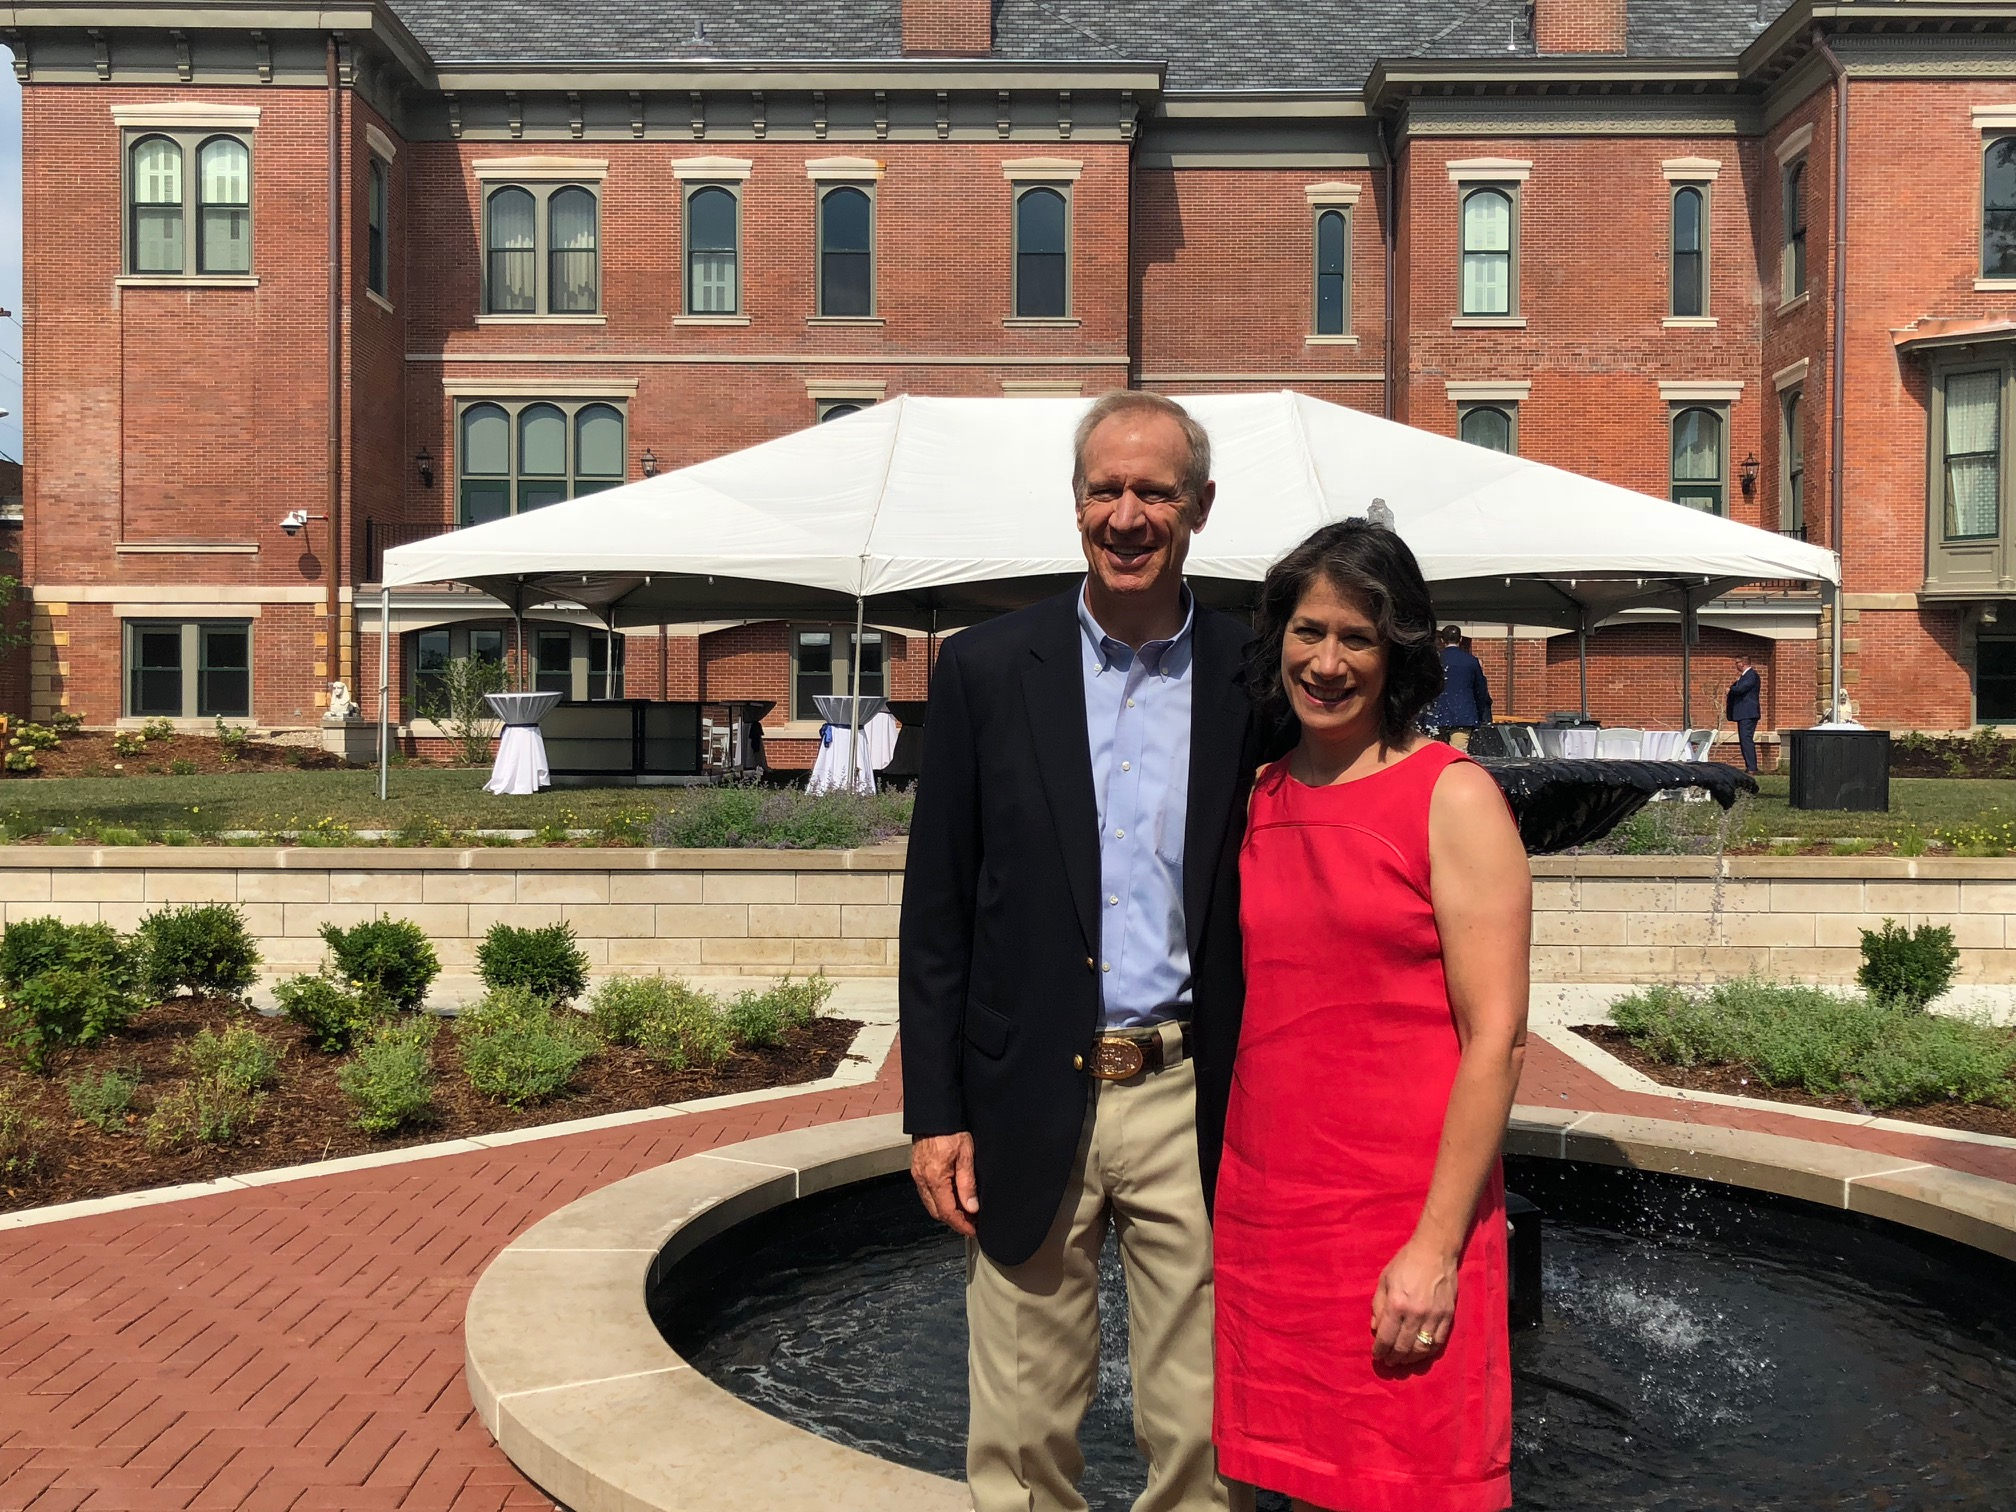 Governor, First Lady welcome public as Illinois Governor's Mansion reopens